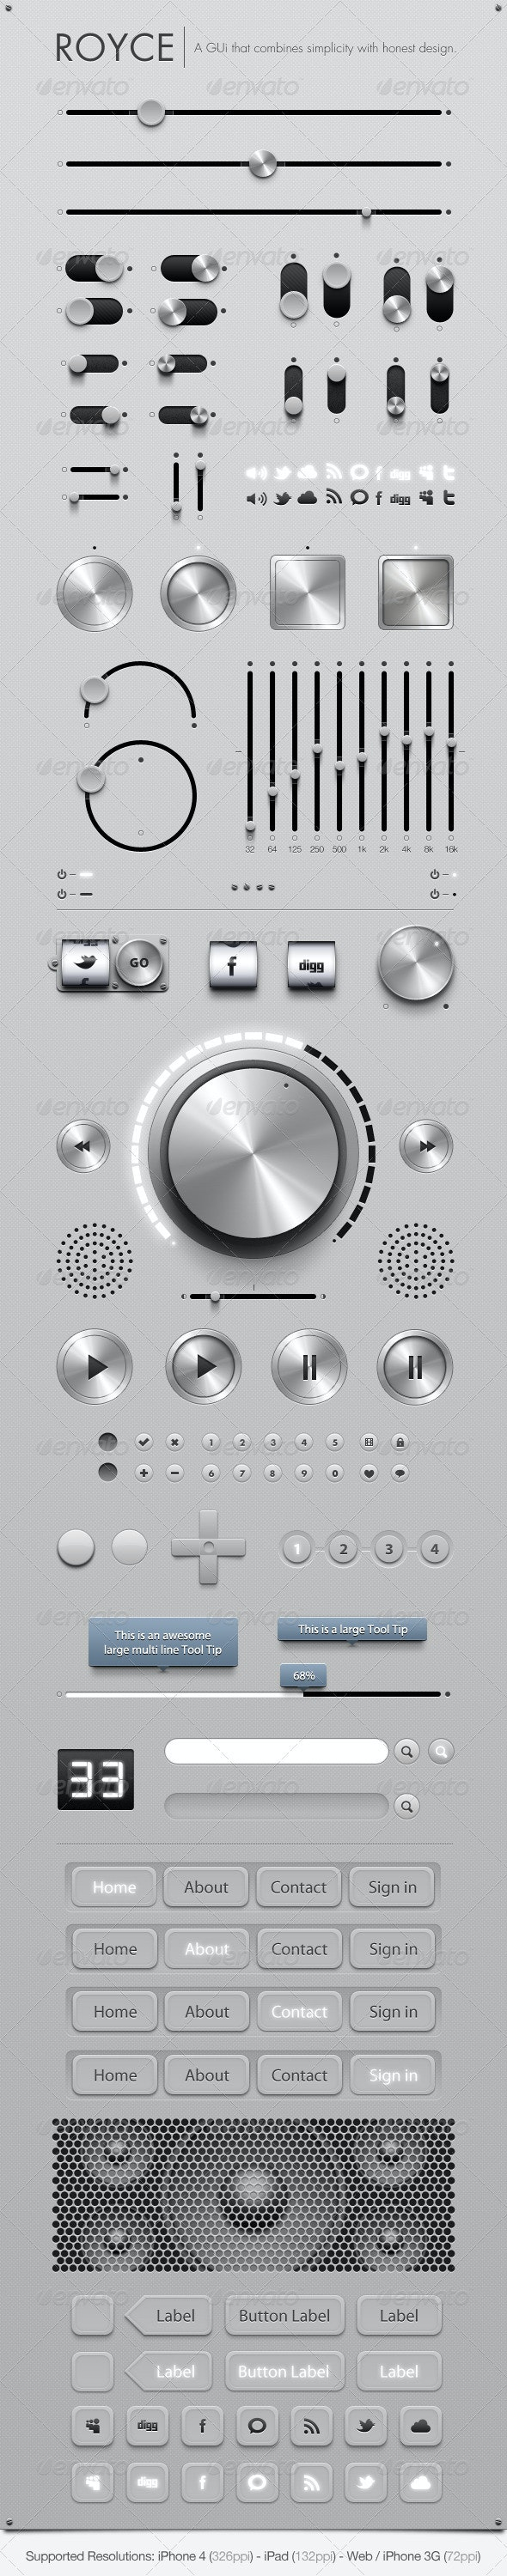 Royce - GUi - Graphical User Interface - User Interfaces Web Elements